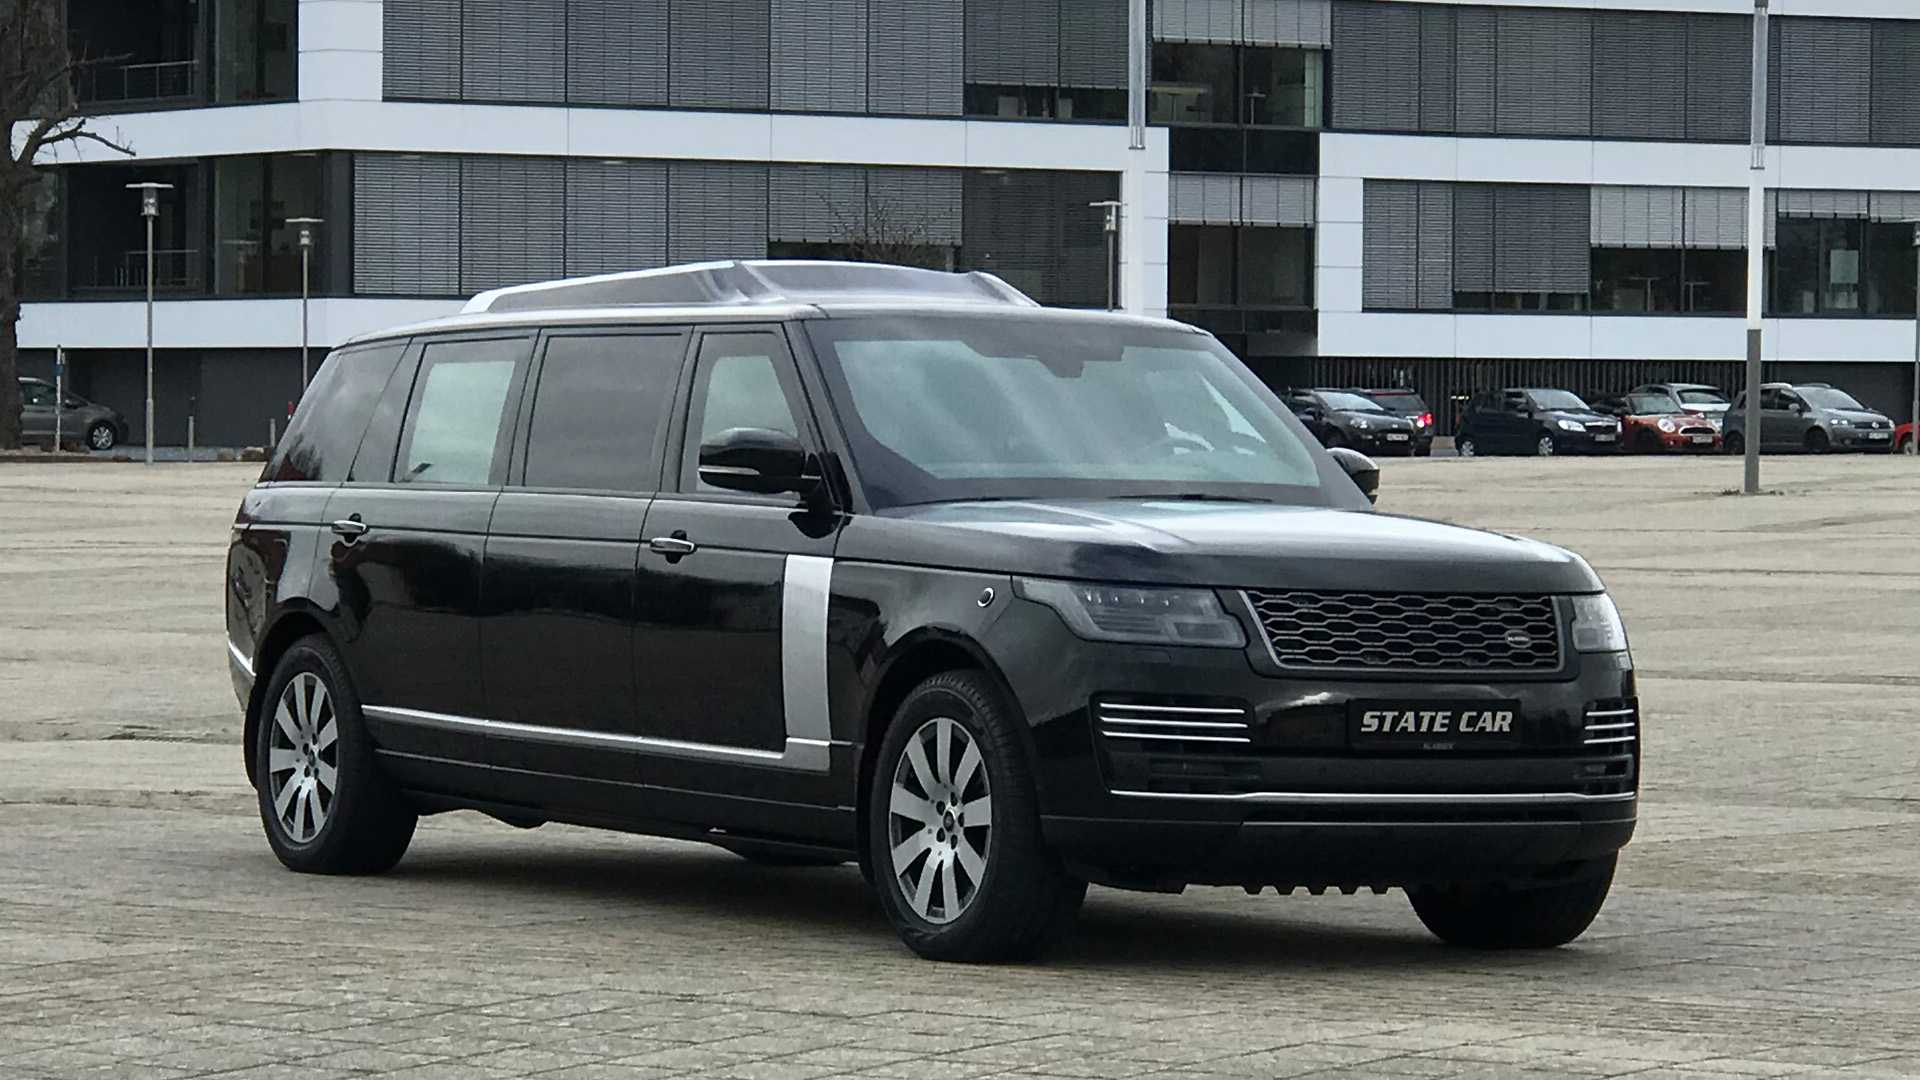 klassen-stretched-land-rover-range-rover-autobiography-10